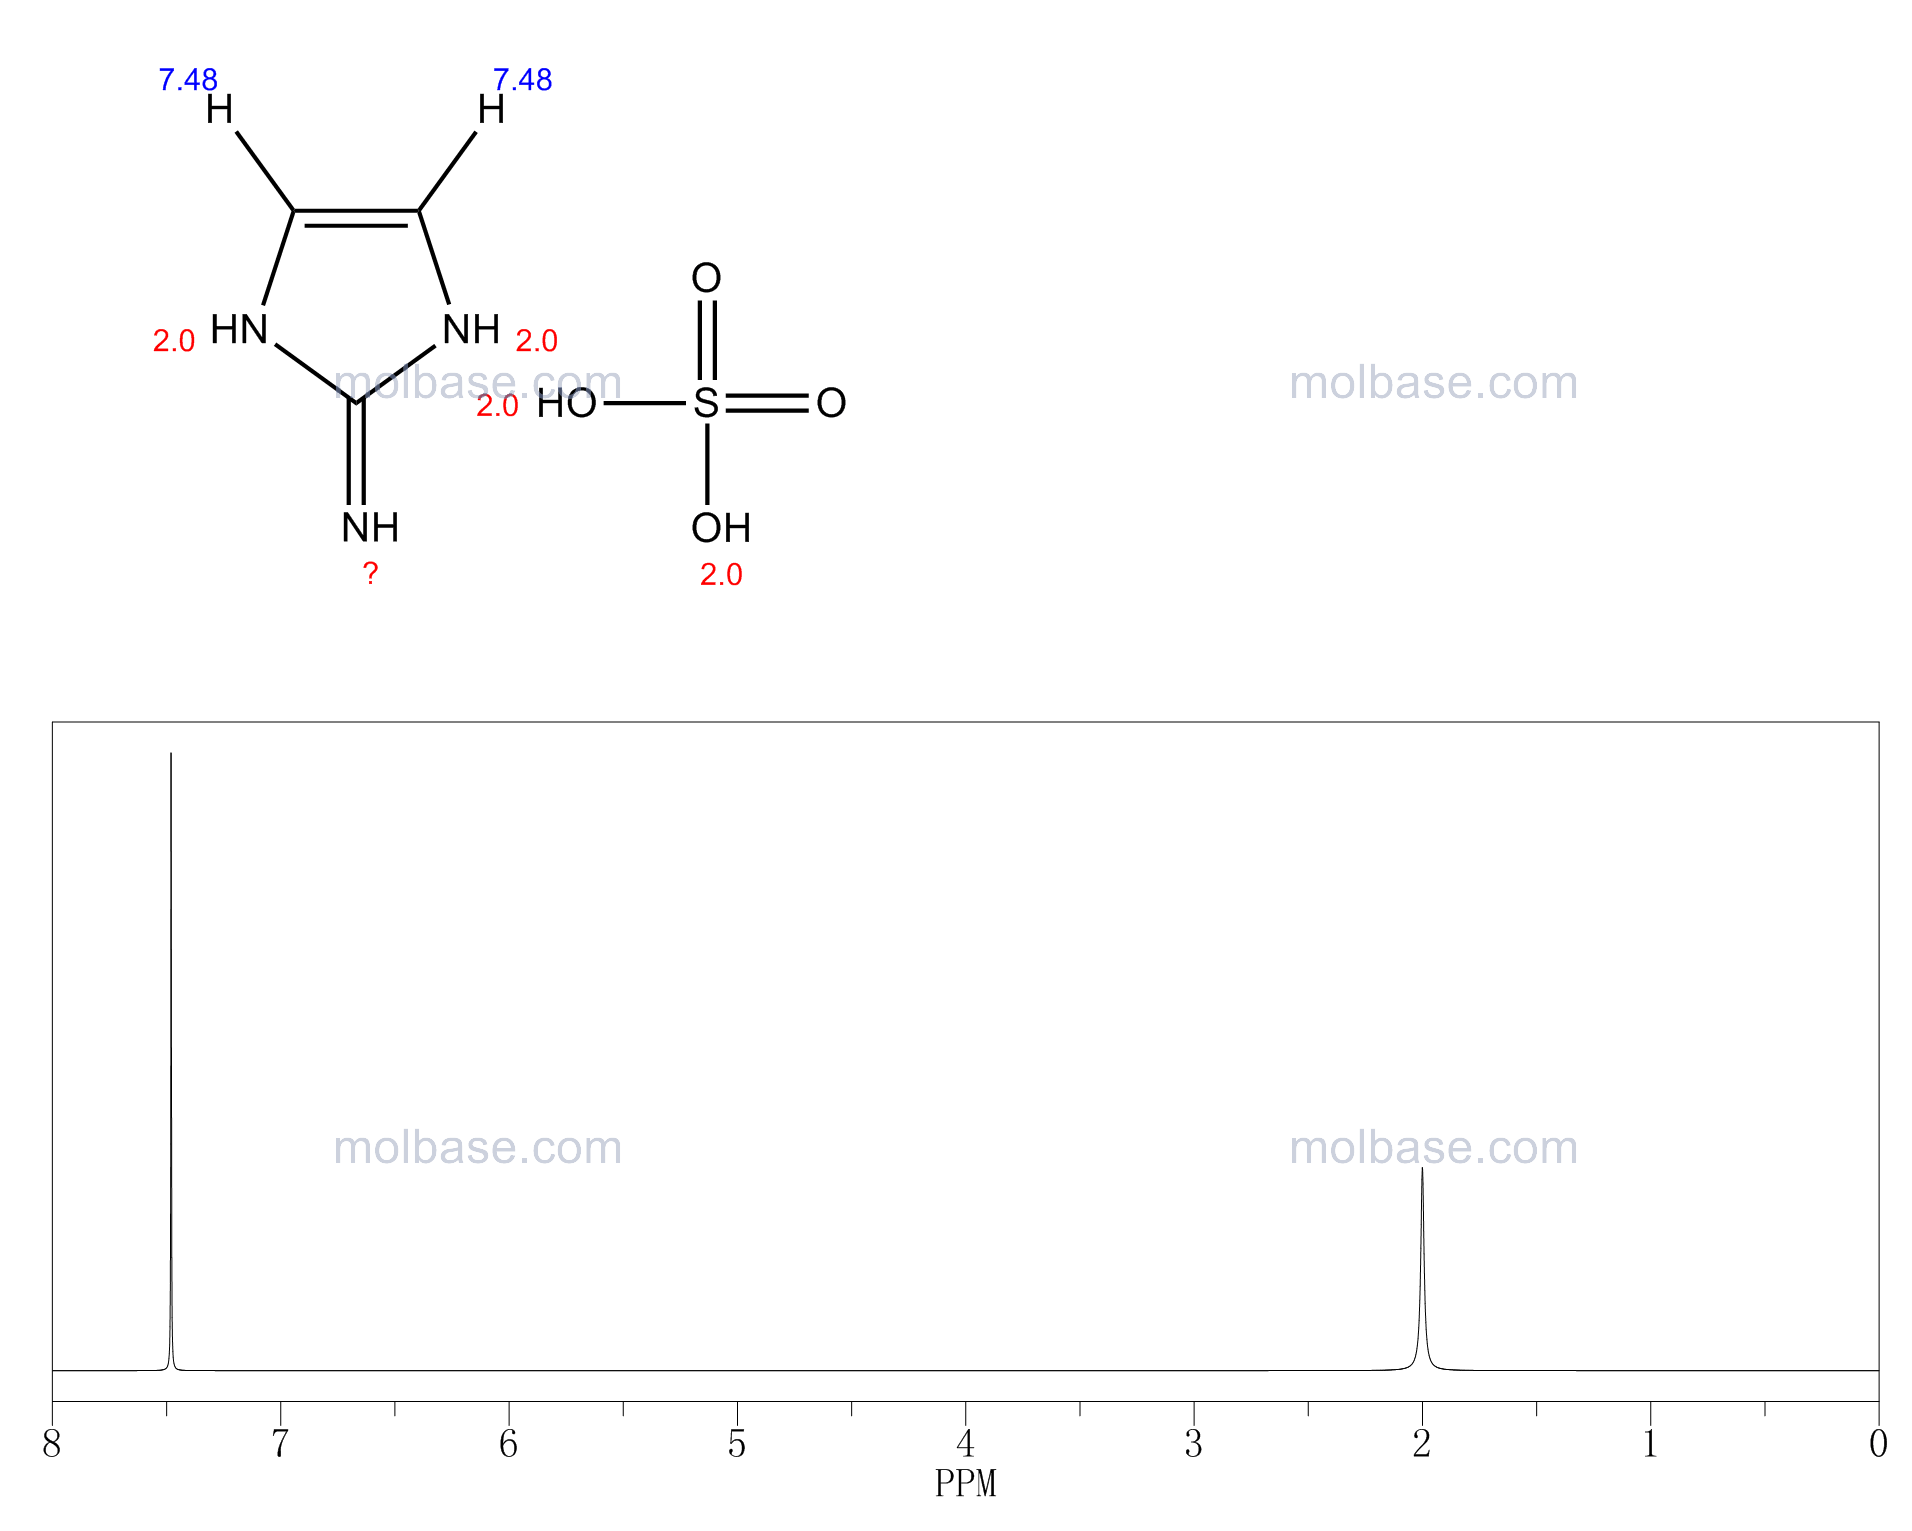 1H-Imidazol-2-amine sulfate (1:1) NMR spectra analysis, Chemical CAS NO. 36946-29-9 NMR spectral analysis, 1H-Imidazol-2-amine sulfate (1:1) C-NMR spectrum